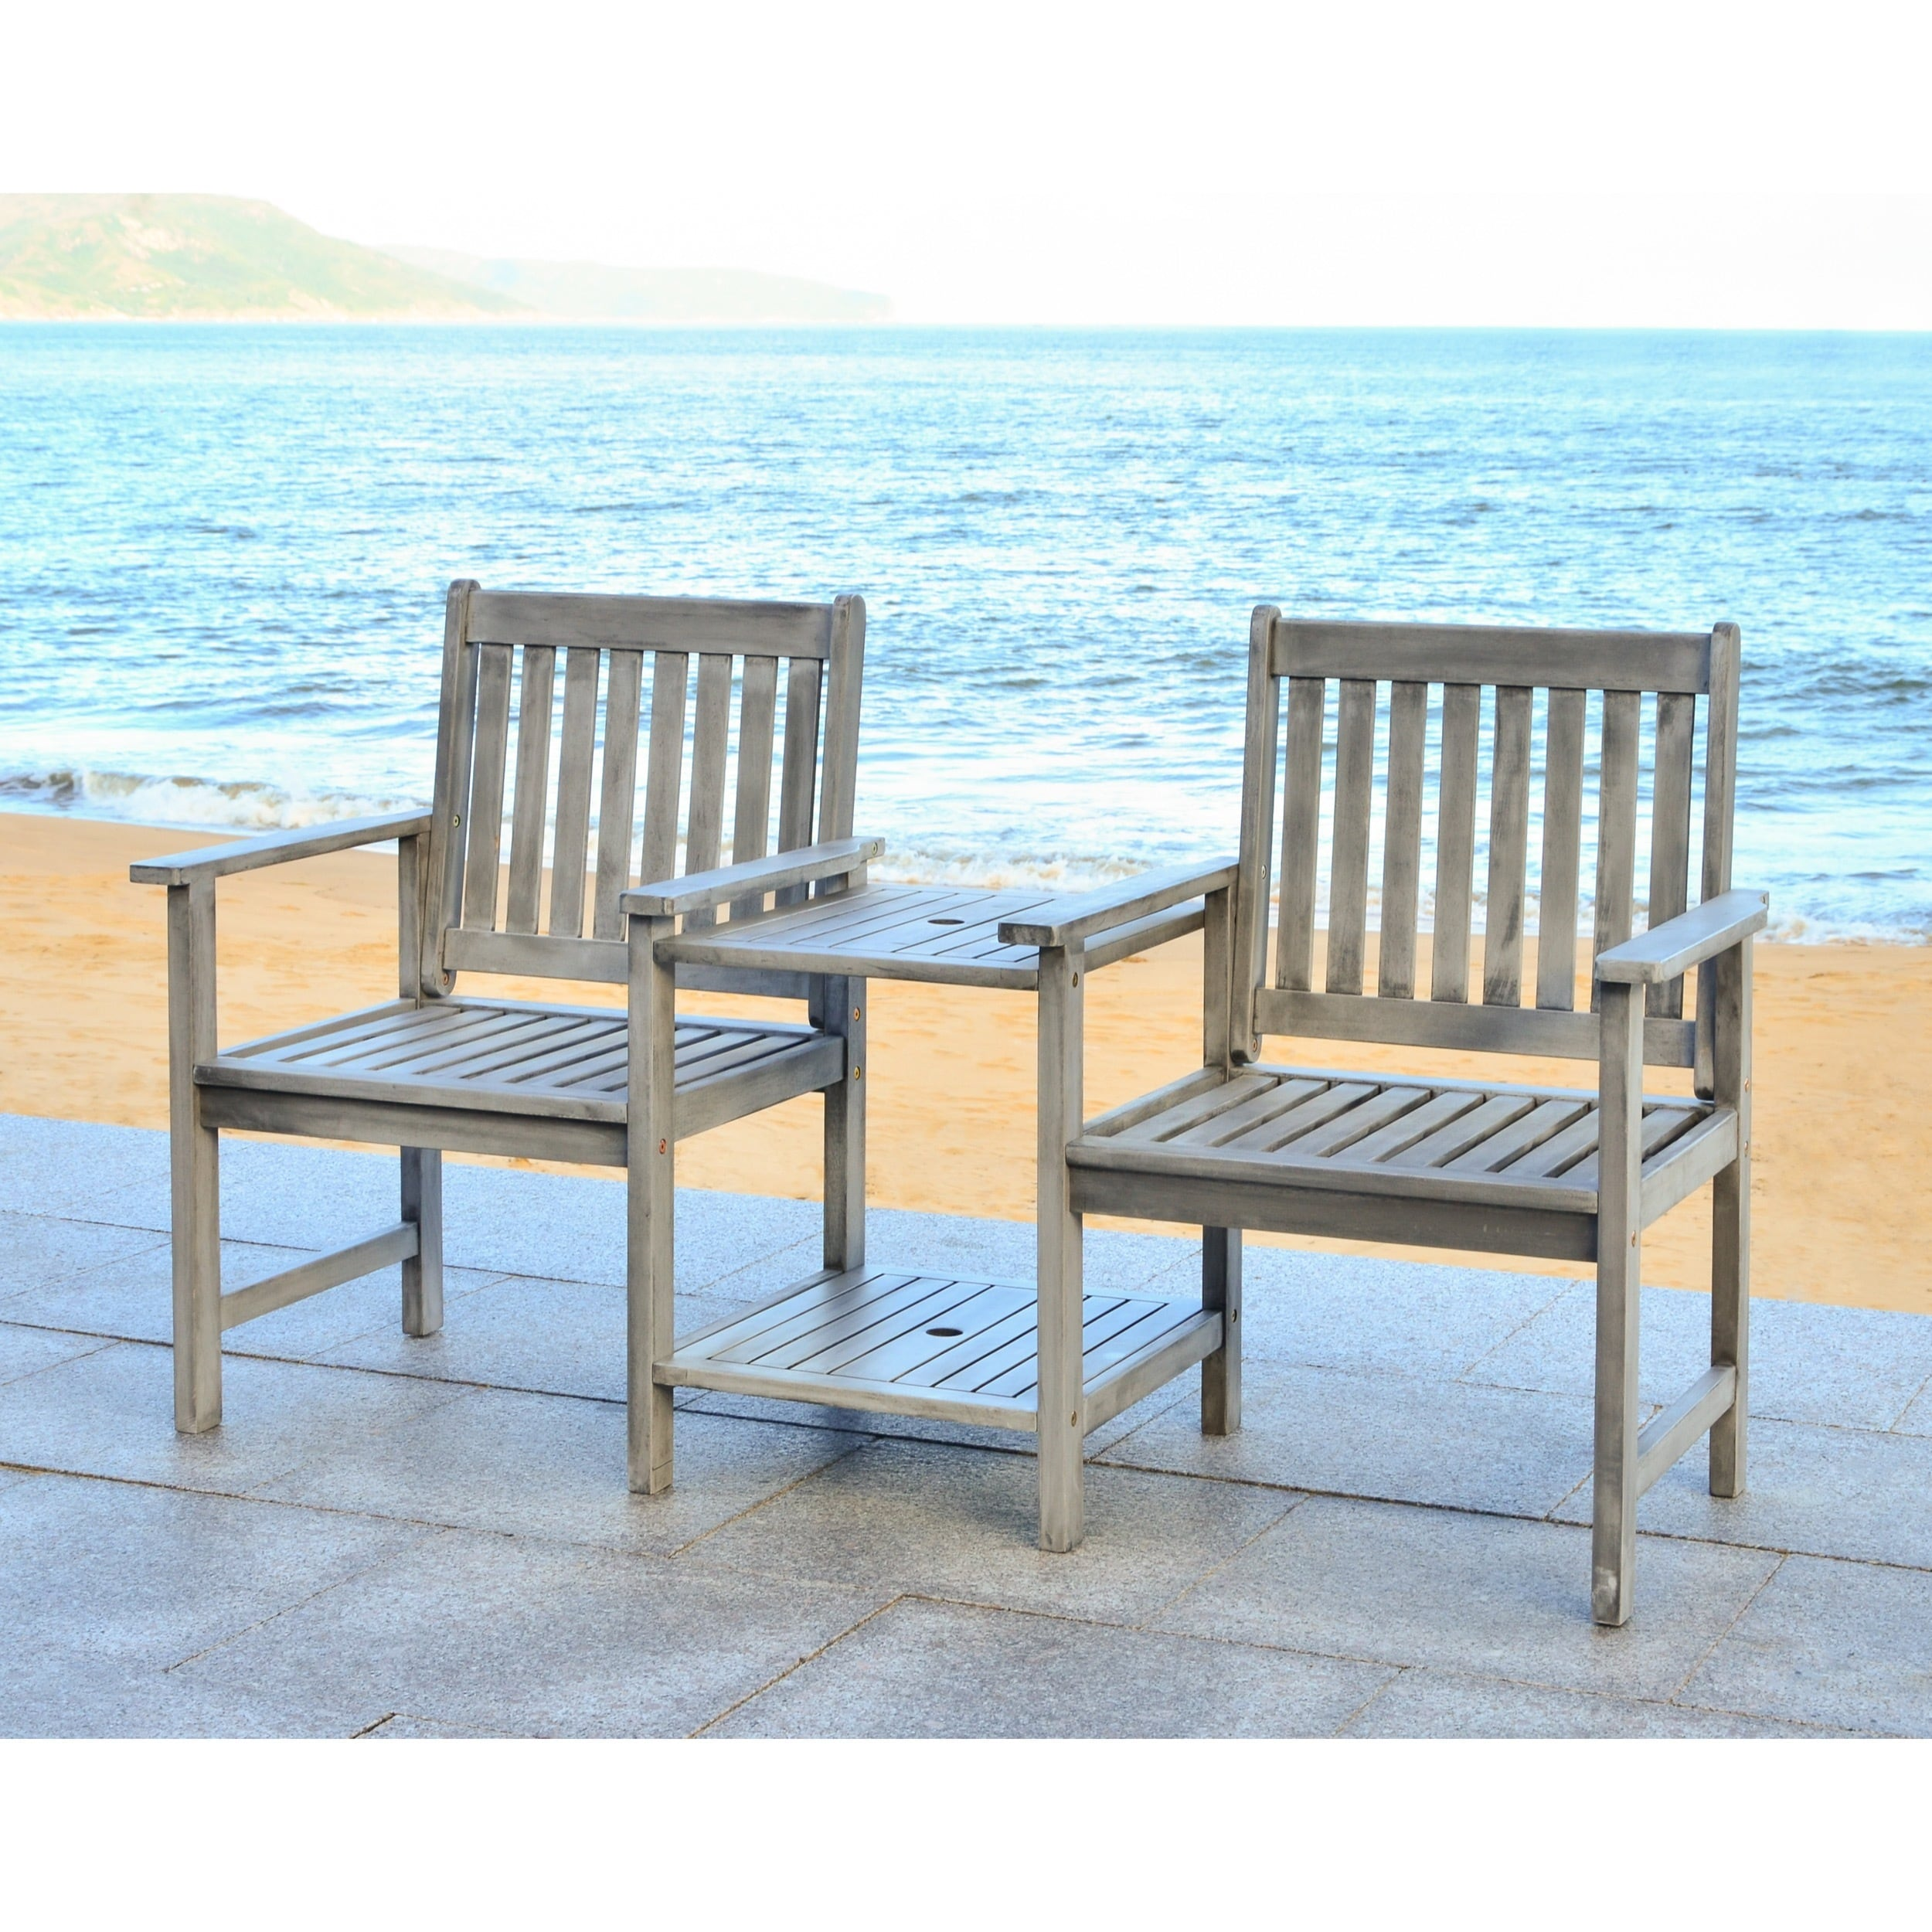 Shop Safavieh Outdoor Living Brea Grey Twin Seat Bench - Free ...